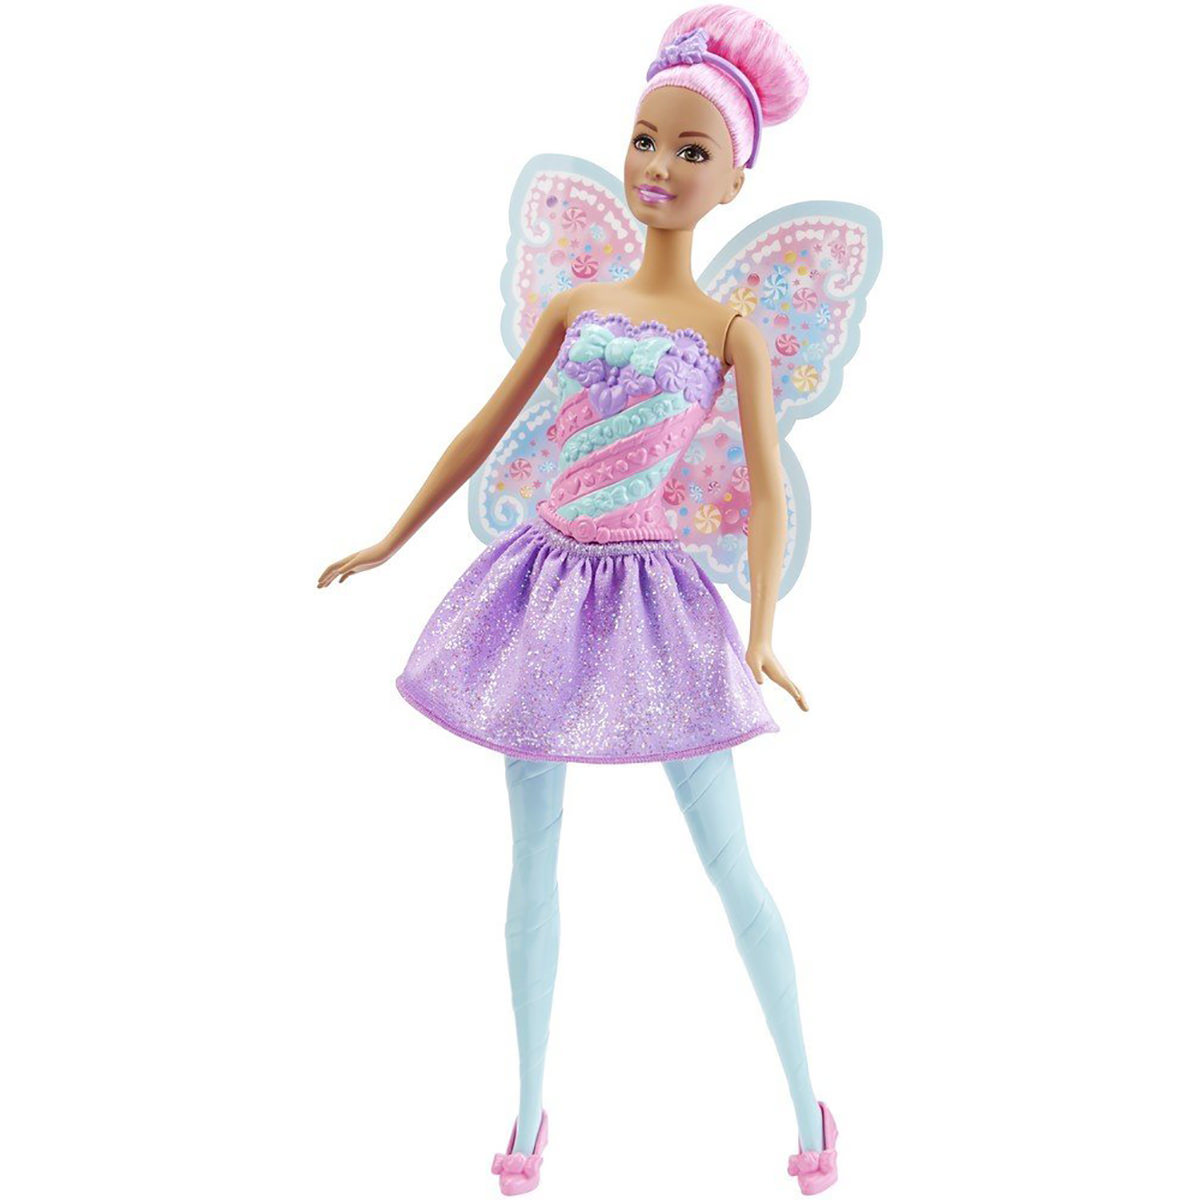 Barbie Fairy Doll Candy Fashion At Hobby Warehouse